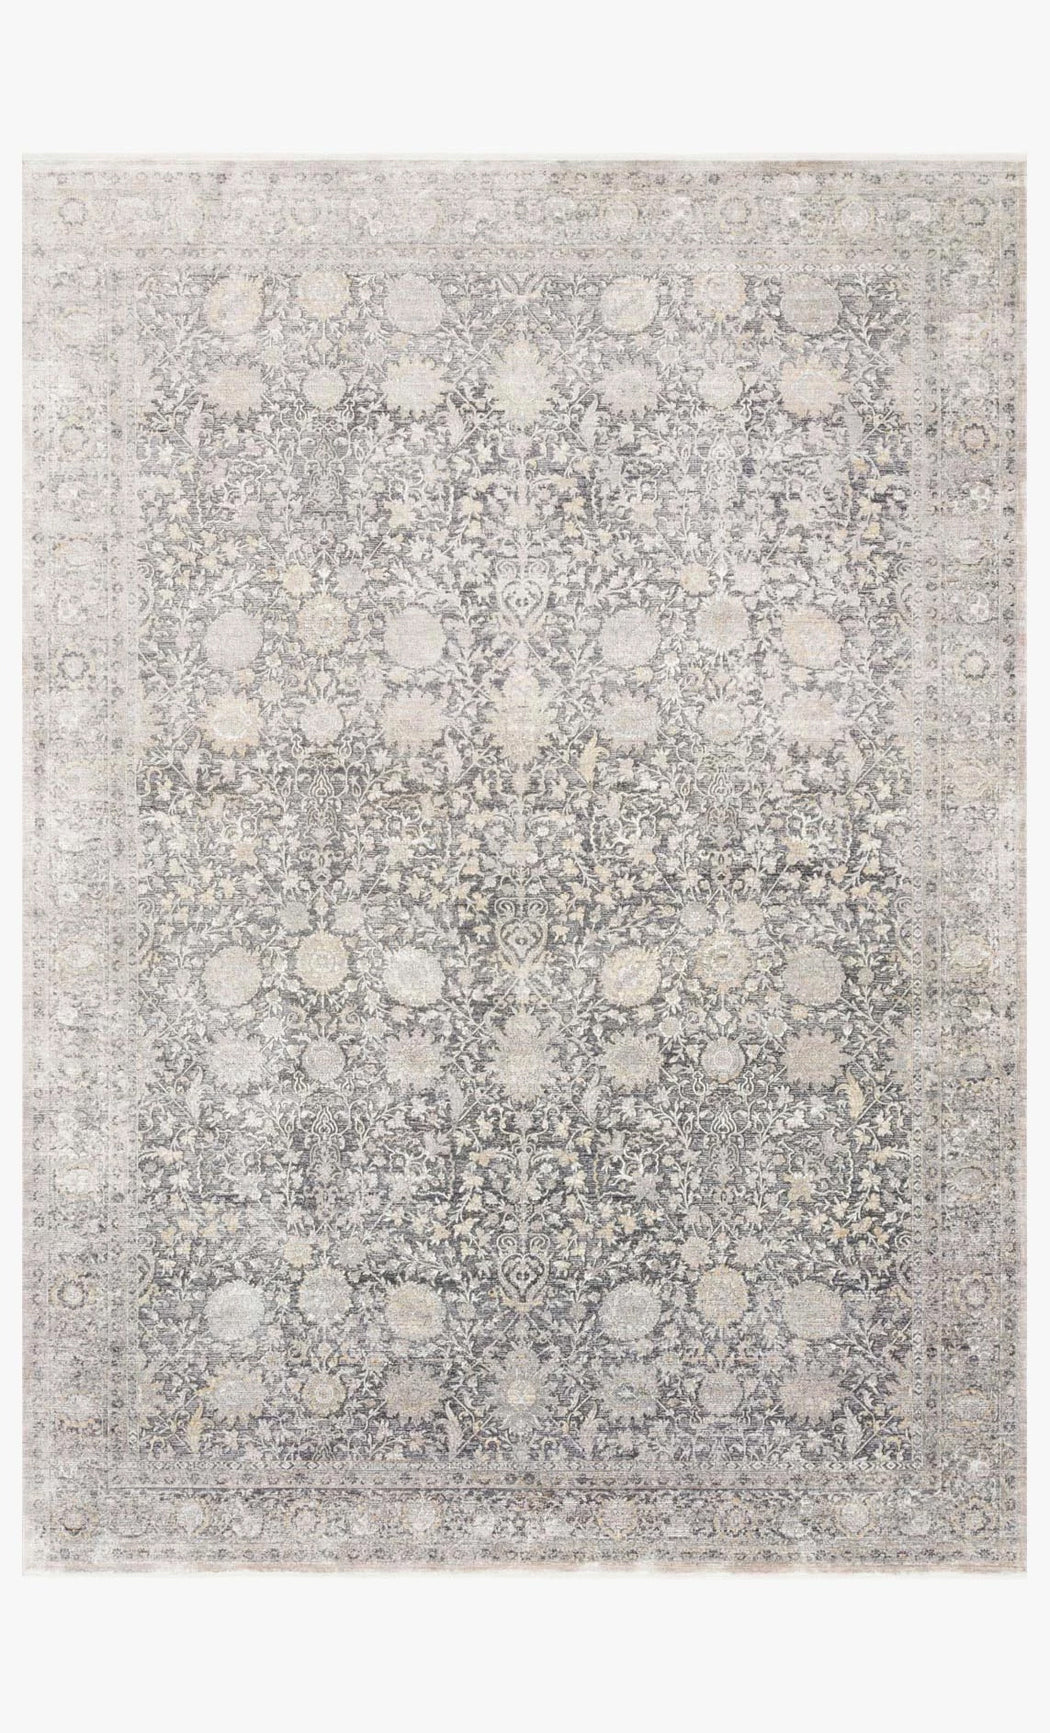 Gemma Rug | Charcoal and Sand